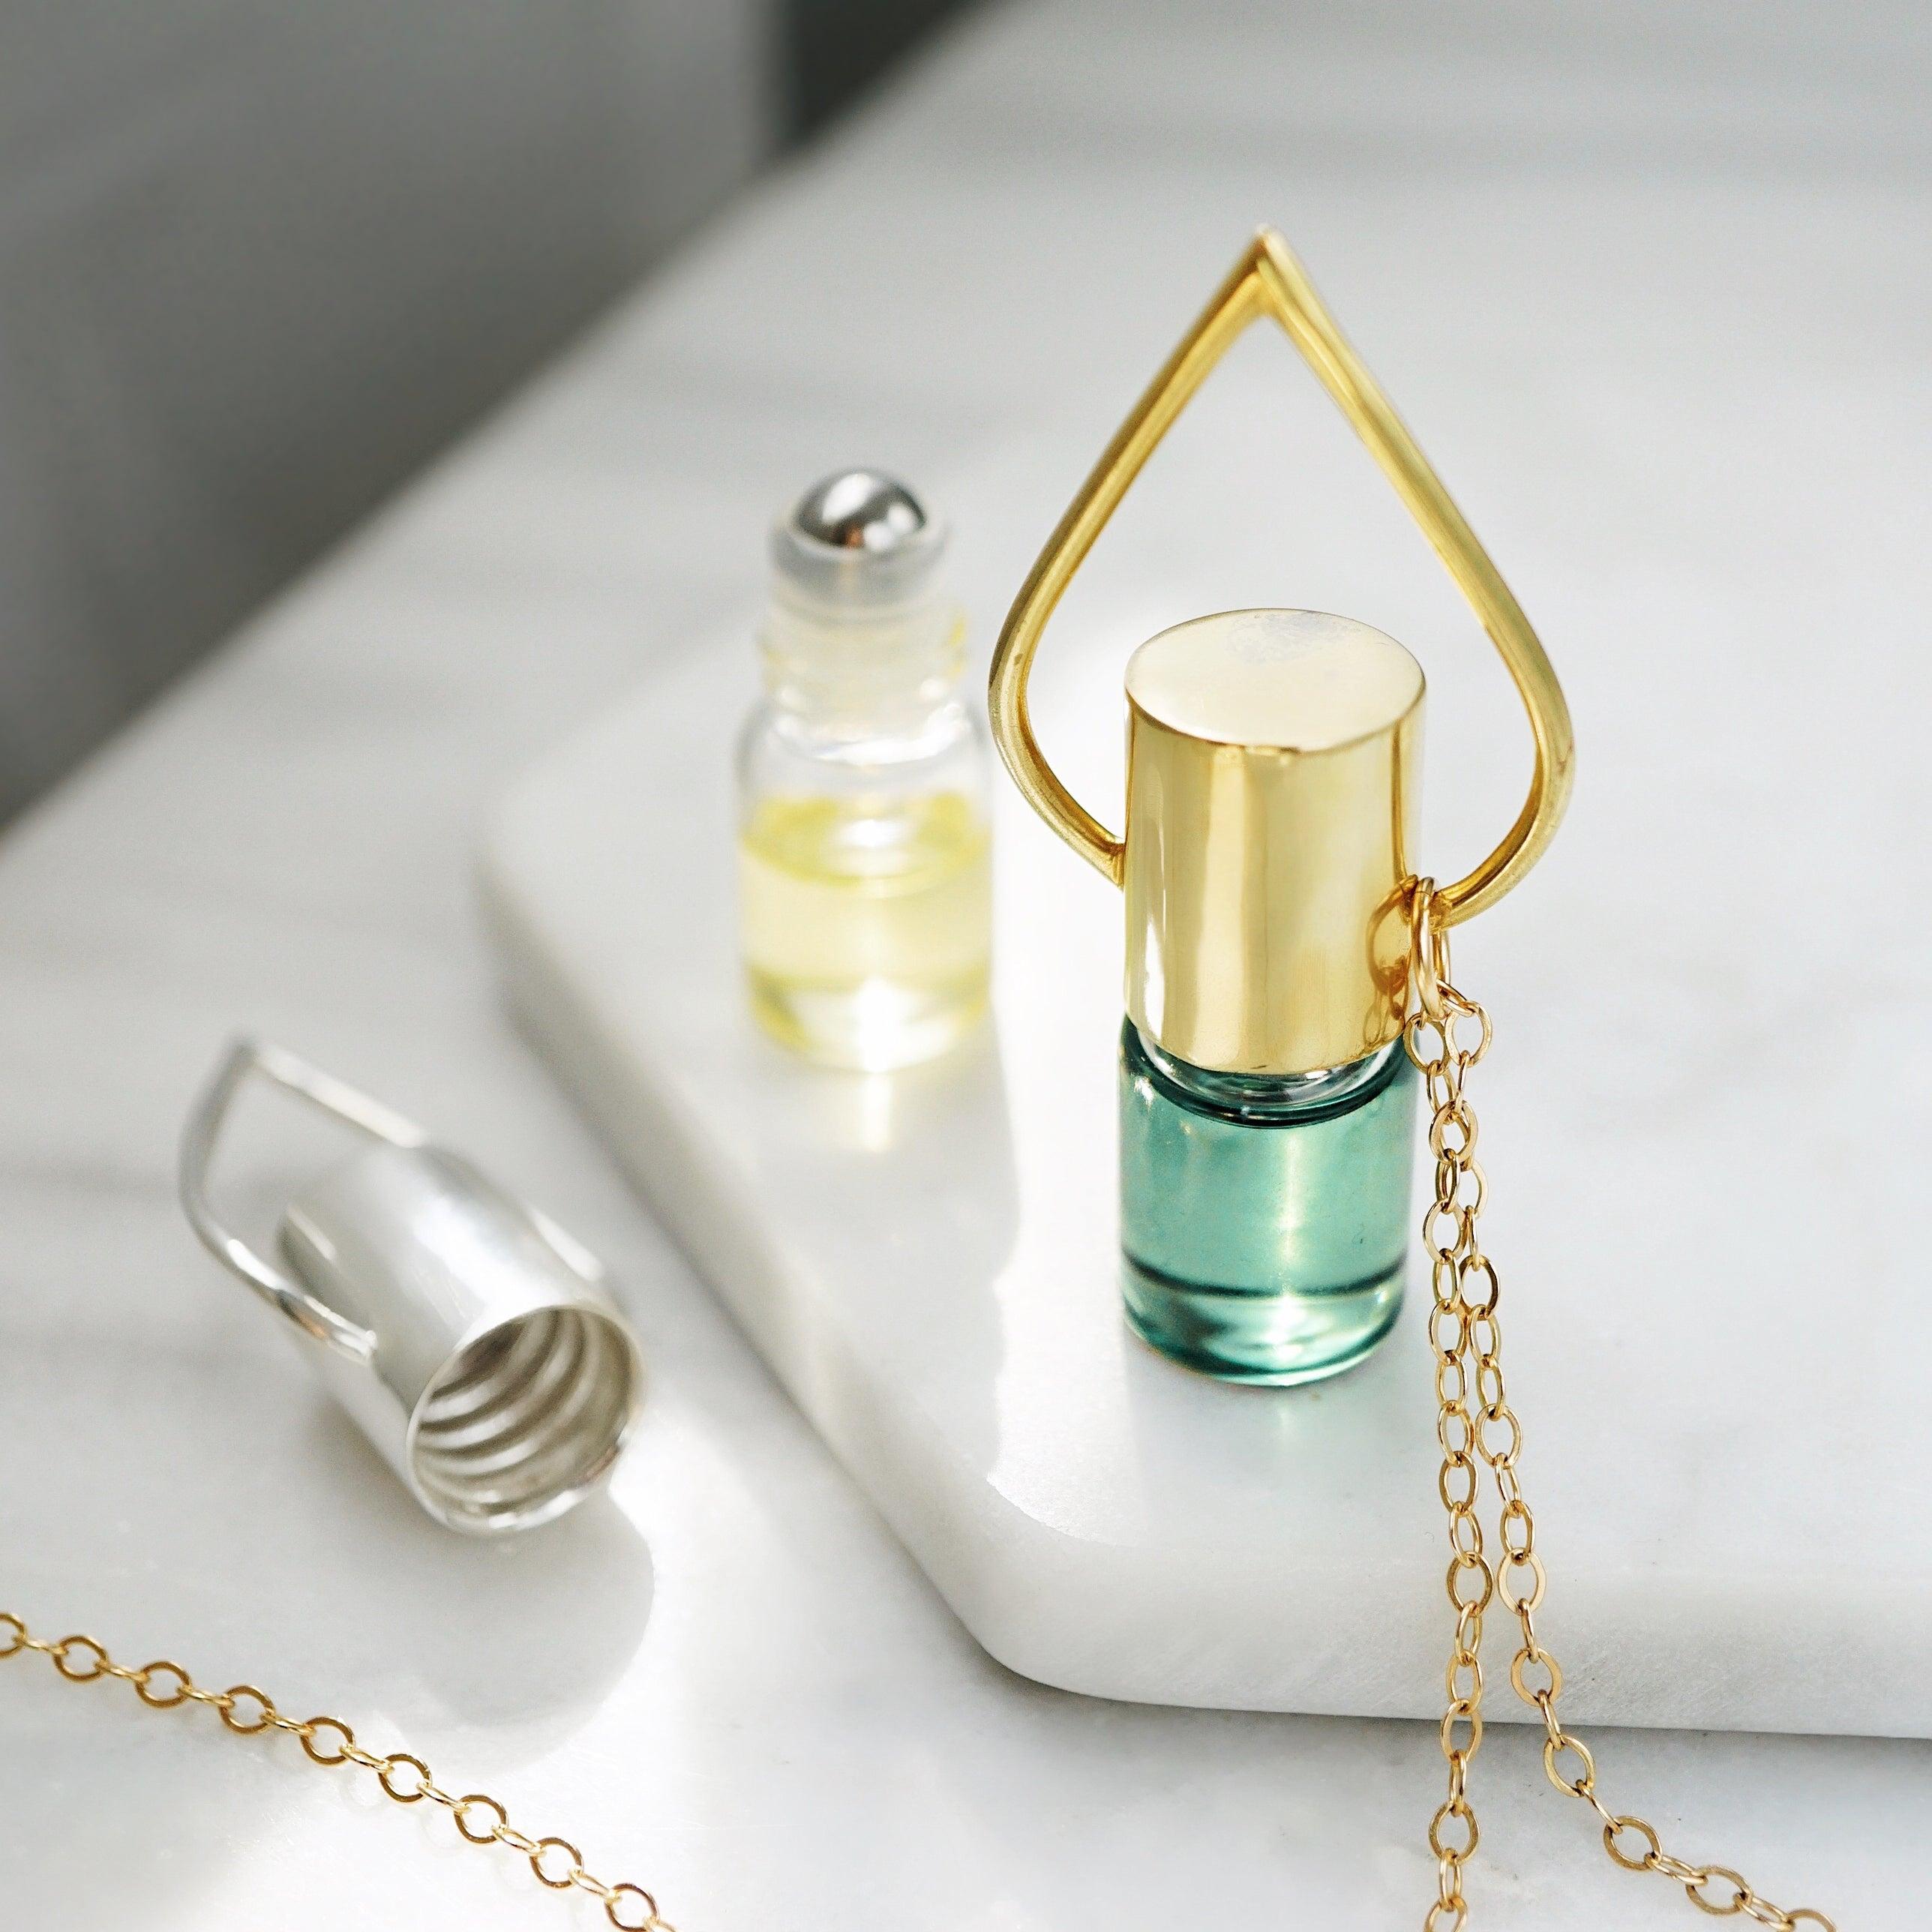 Silver or Gold Oil Drop Roller Bottle Essential Oil Necklace [G]+[S] - Lava Essential Oils